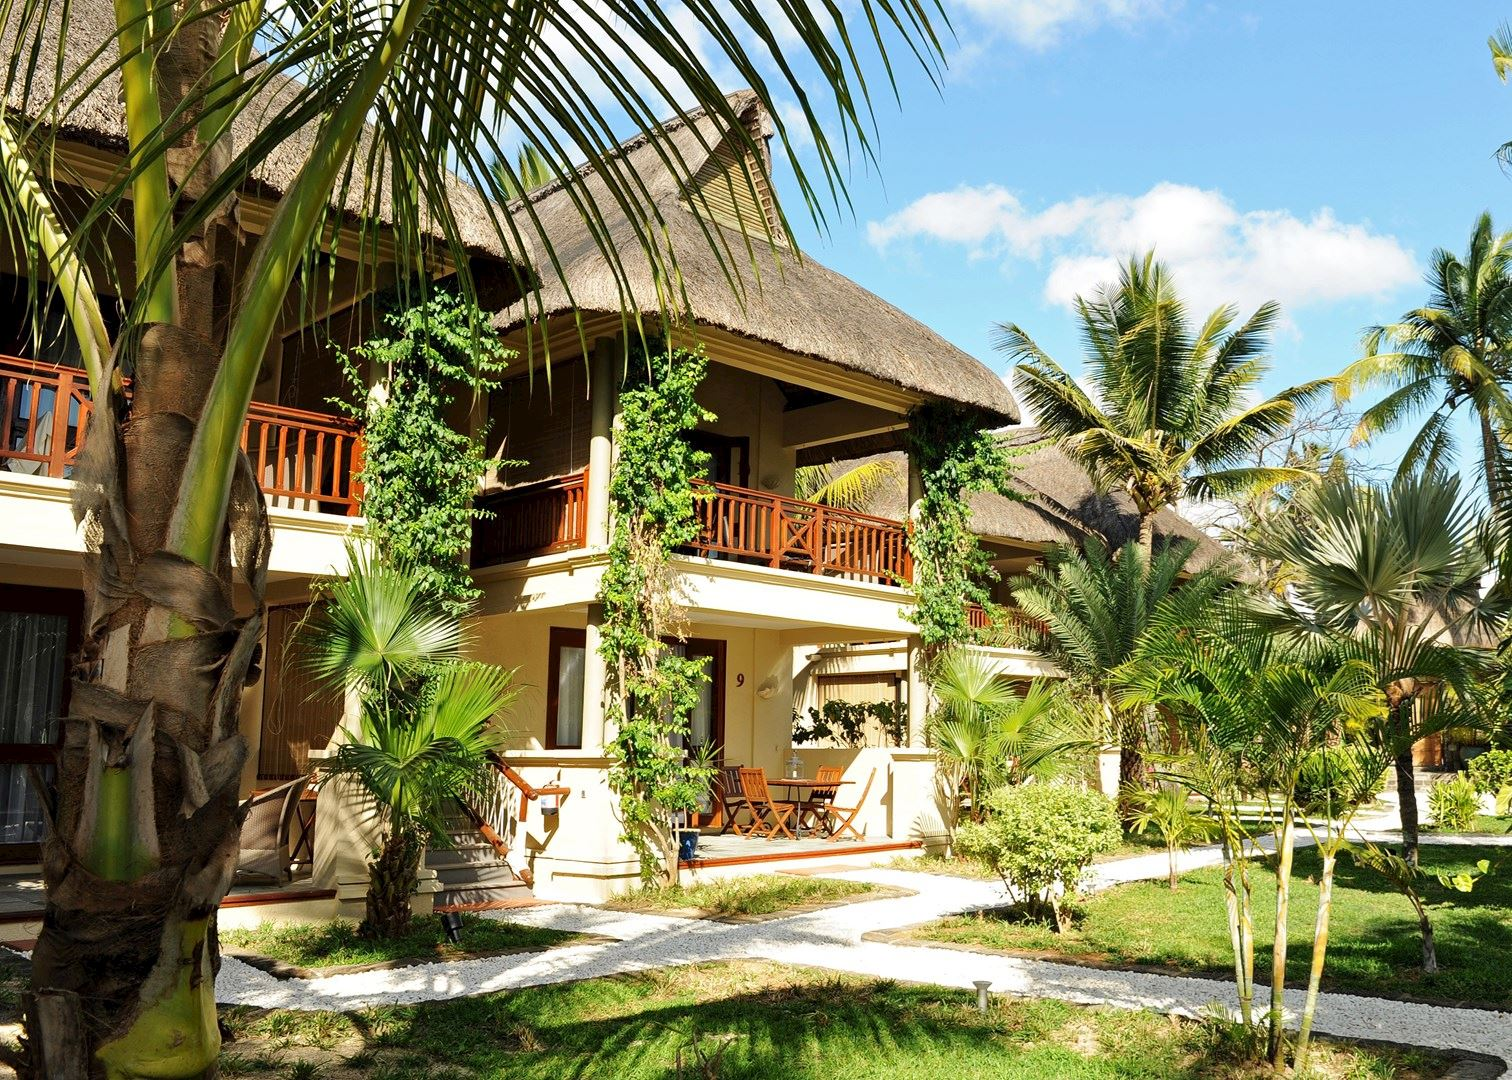 Sakoa boutique hotel hotels in mauritius audley travel for Design hotel mauritius